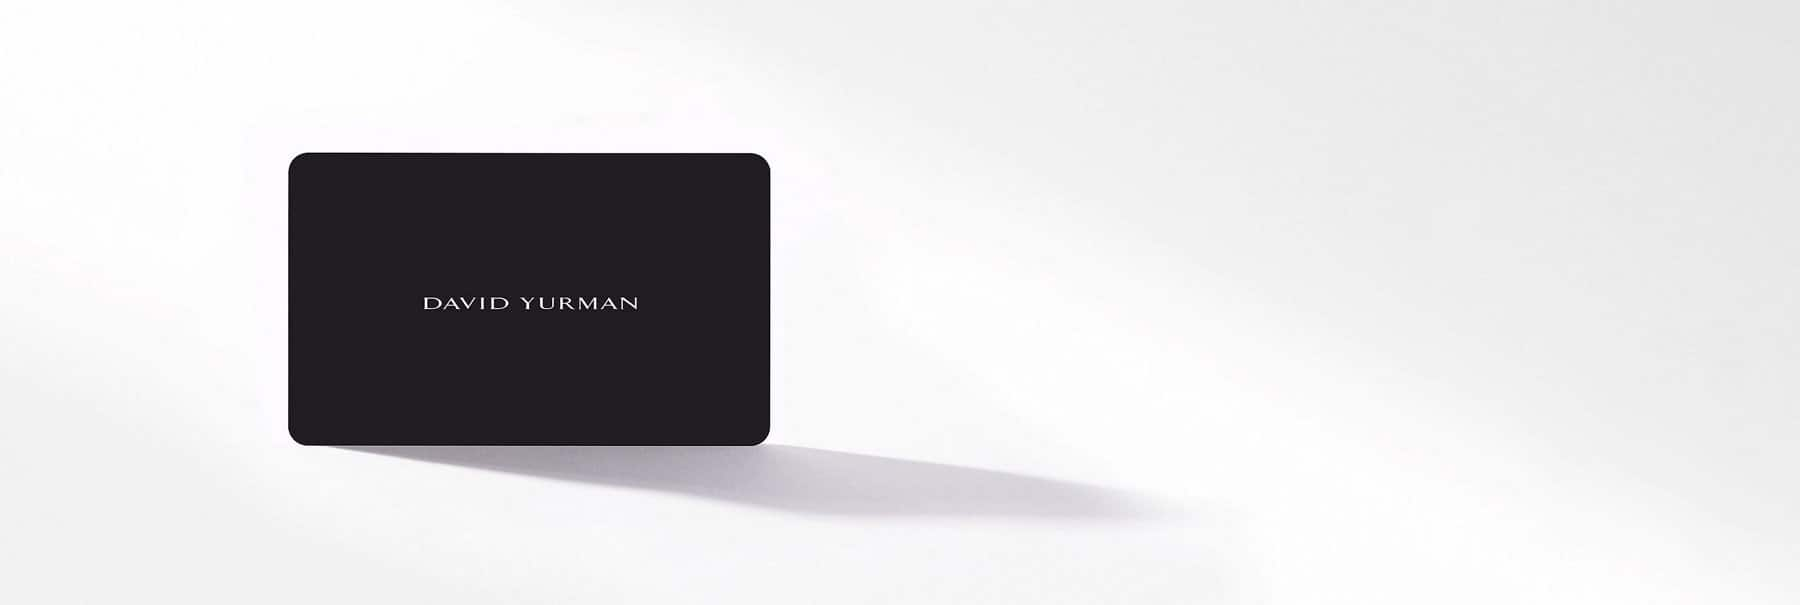 """A color photograph shows a grey """"David Yurman"""" gift card against a white background."""